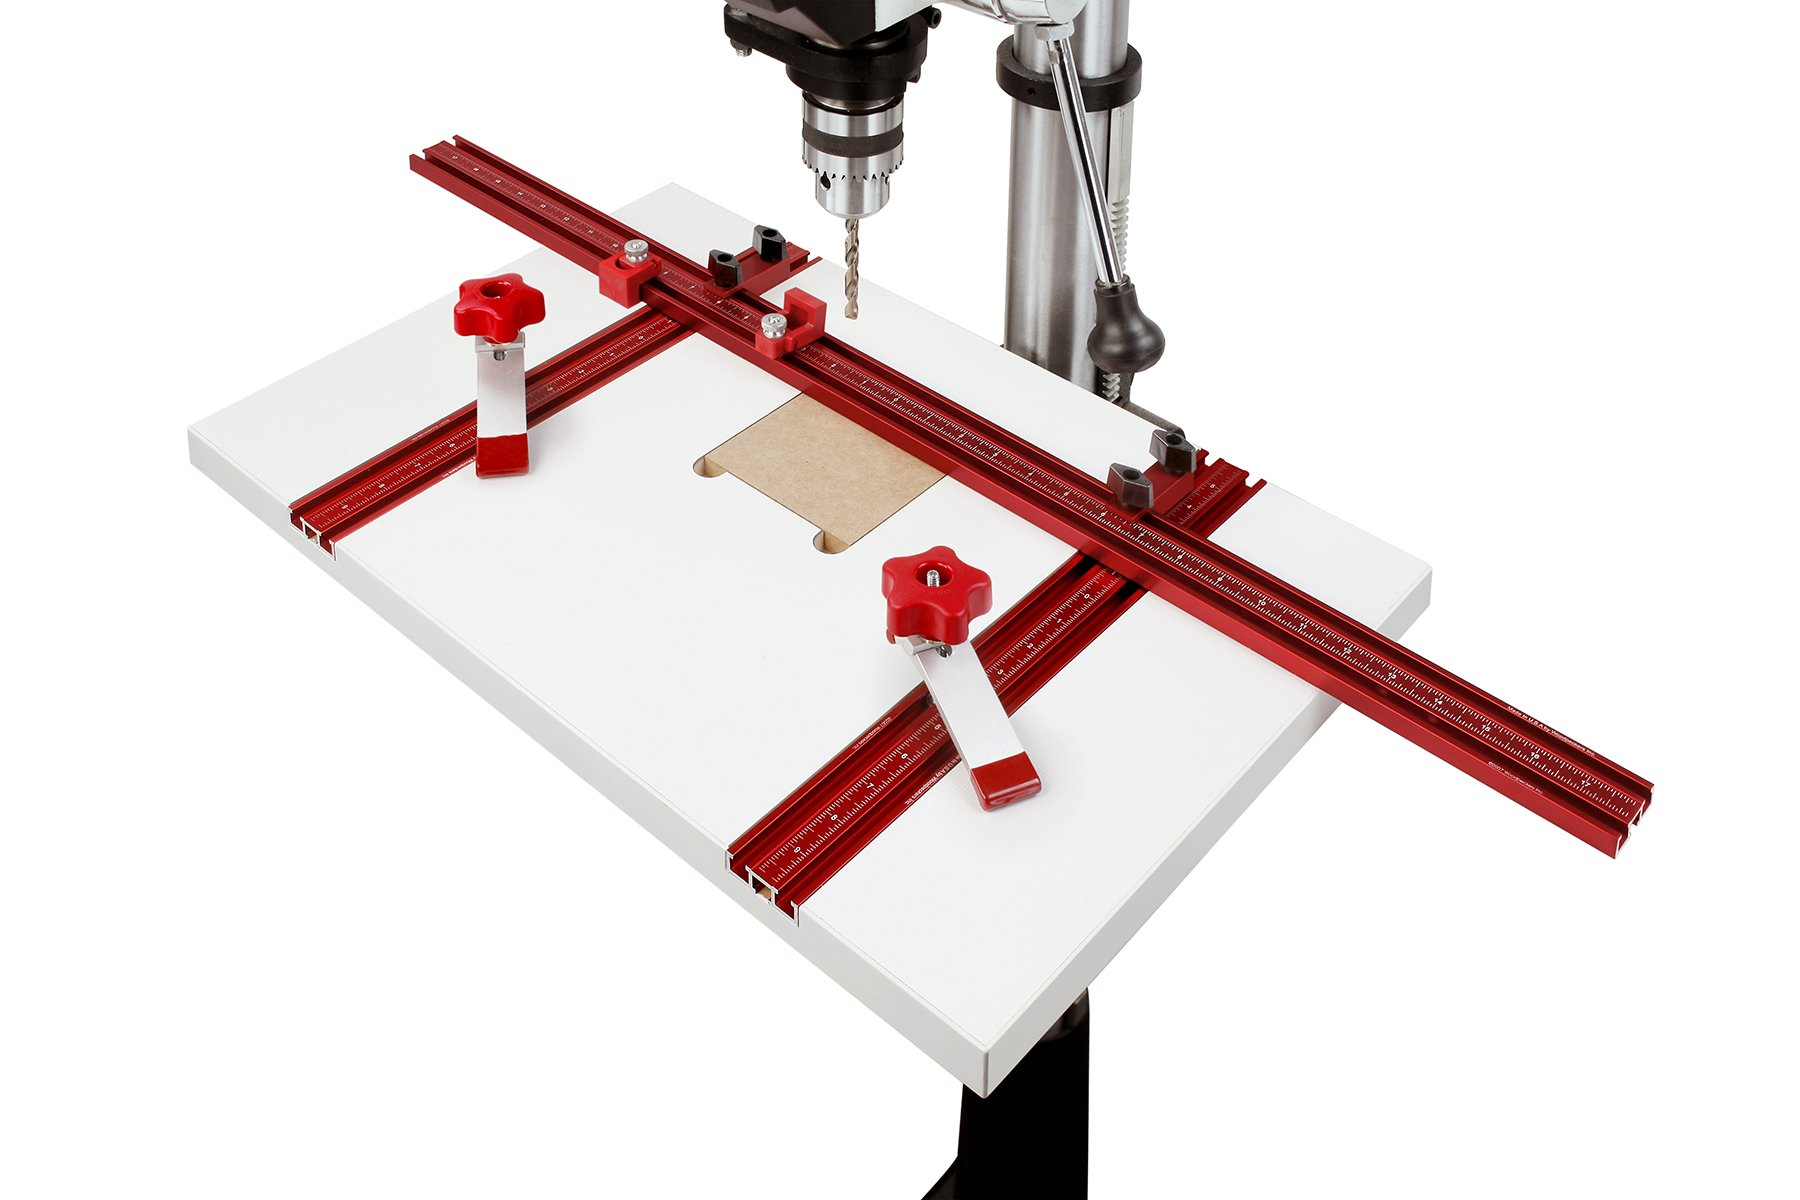 Woodpeckers WPDPPACK1 Drill Press Table